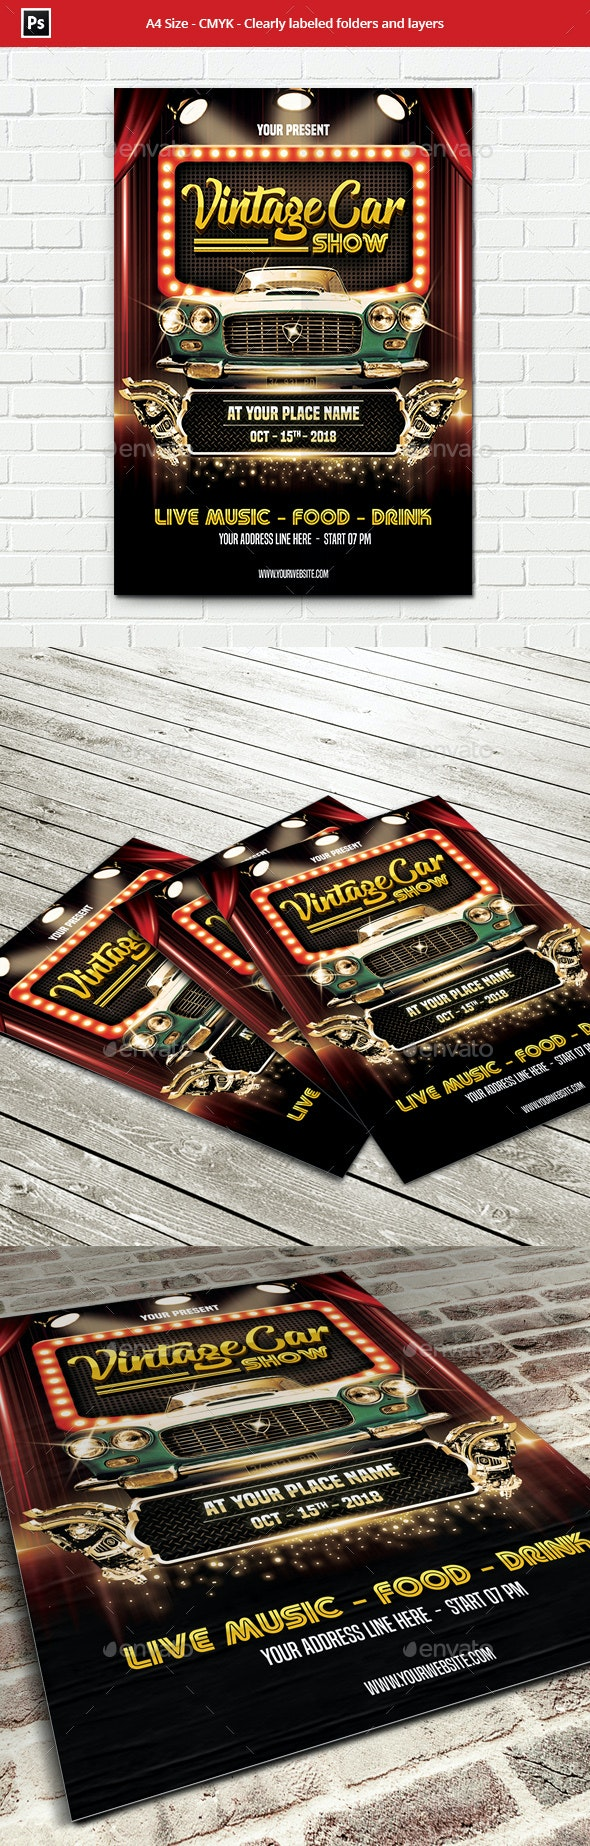 Vintage Car Show Flyer Template - Events Flyers